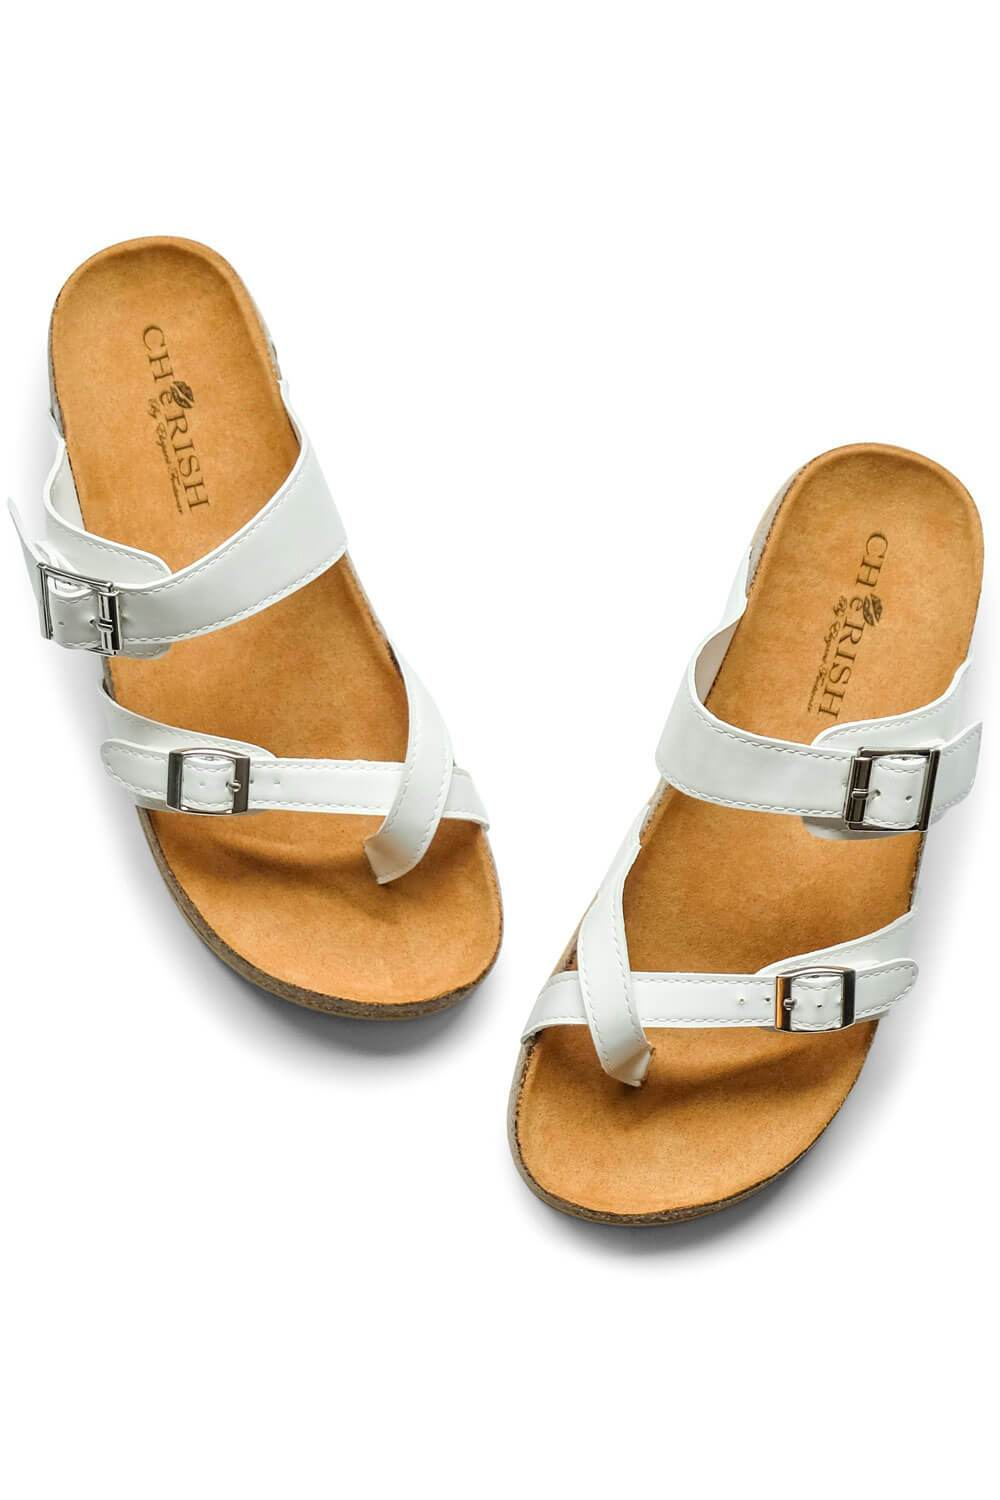 Estella Brik Sandal White - MILK MONEY